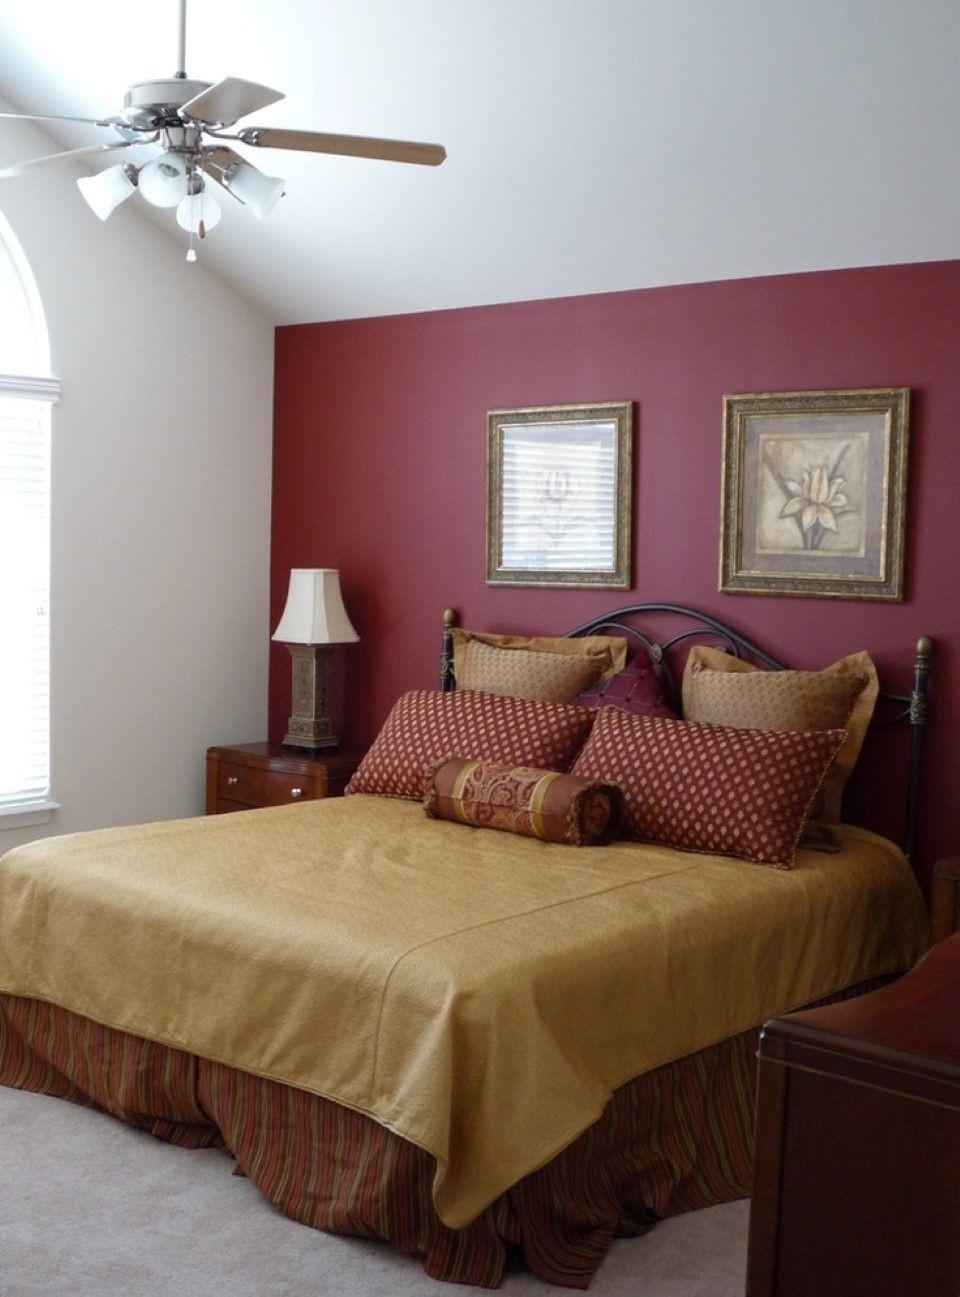 Charming MAROON Accent Wall Bedroom | Burgundy Accent Wall: Pretty Bedroom Ceiling  Fan With Lights Feat Warm ... | Vermont House | Pinterest | Bedroom Ceiling  Fans, ...